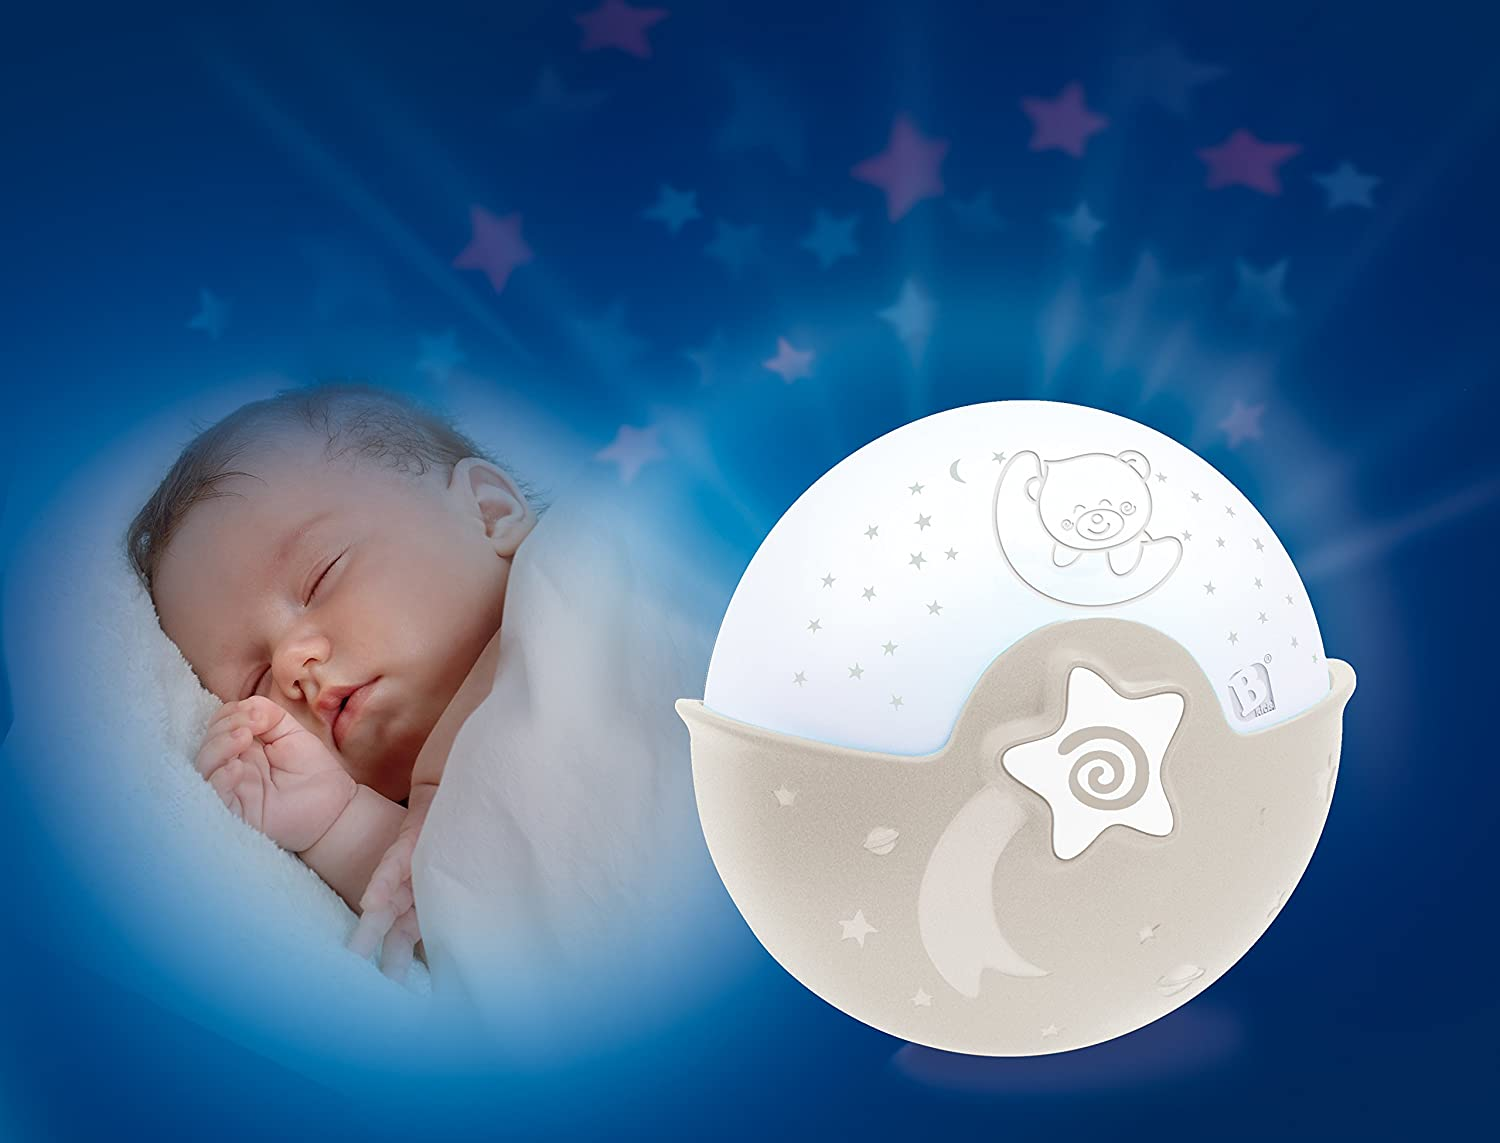 Licht Projector Baby : Infantino soothing light & projector grau: amazon.de: beleuchtung